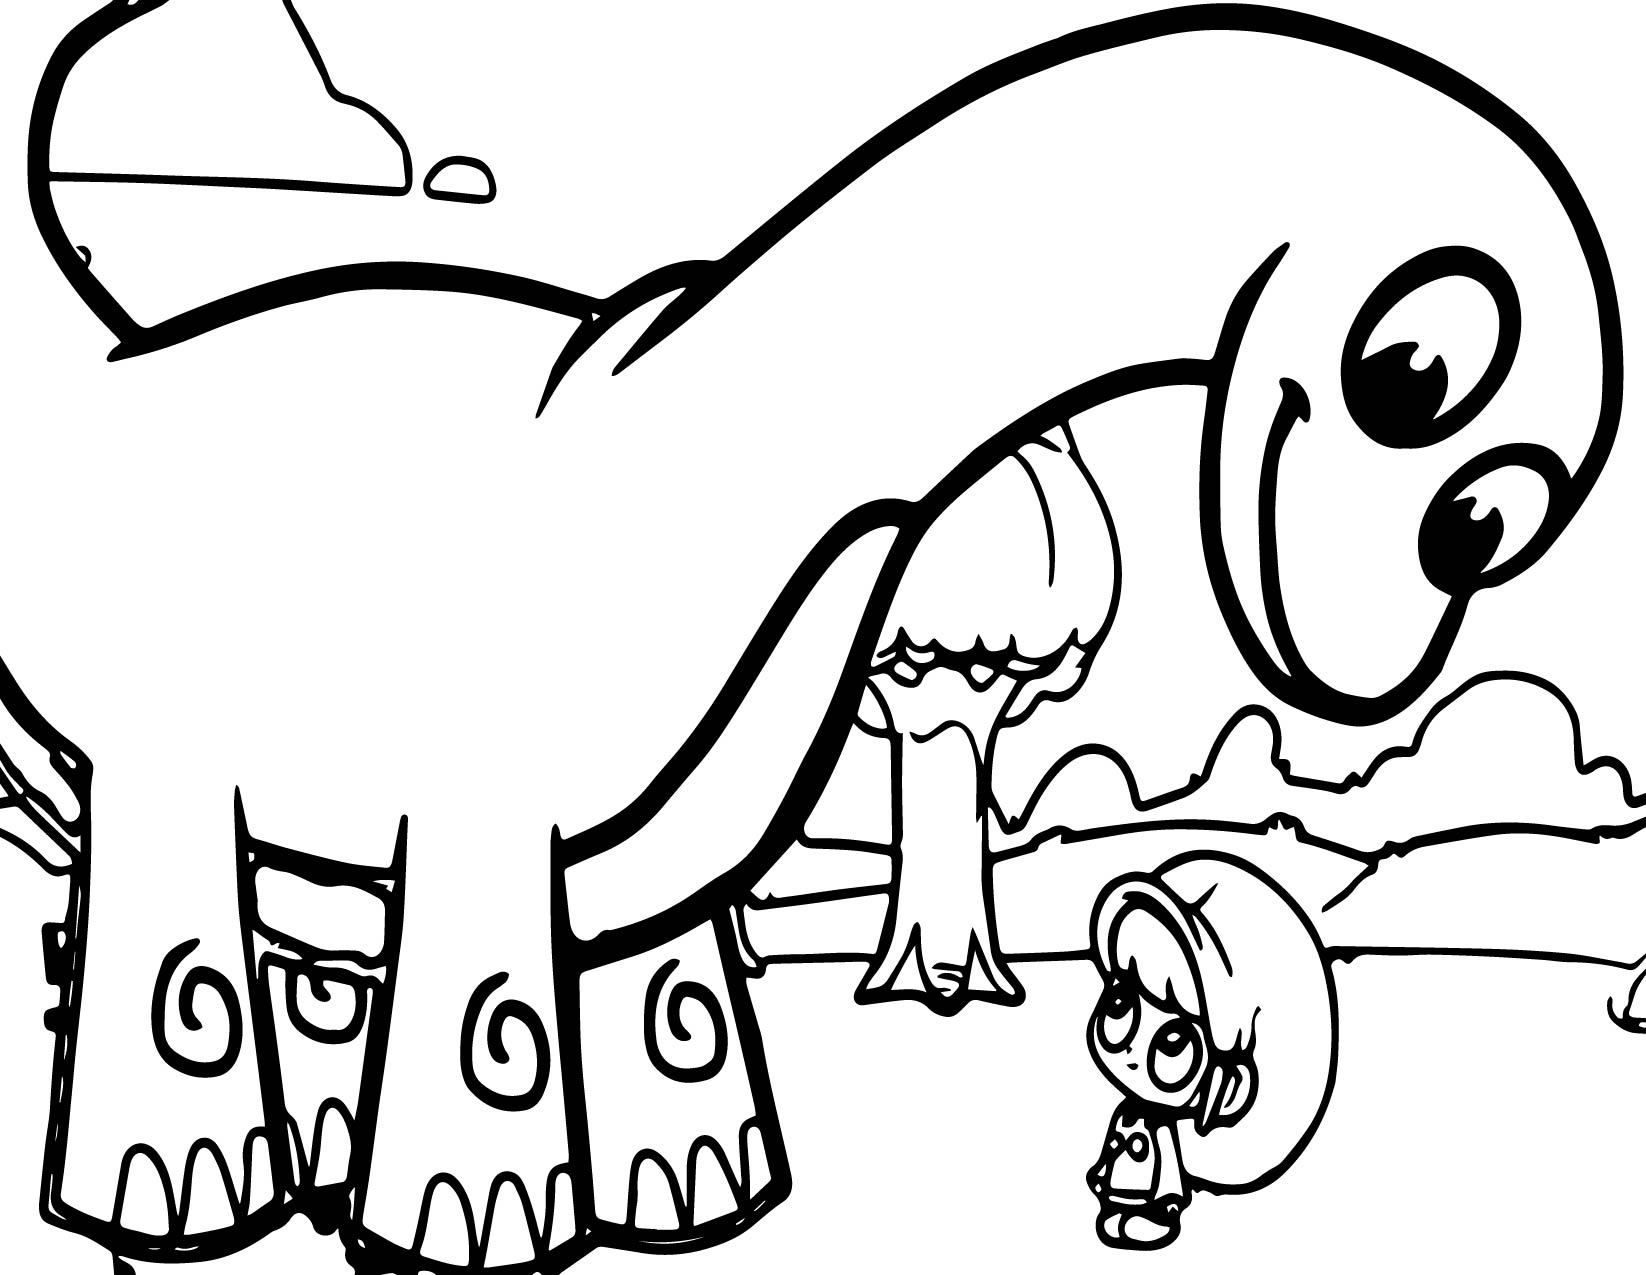 mila and mophle my cute dinosaur coloring pages wecoloringpage